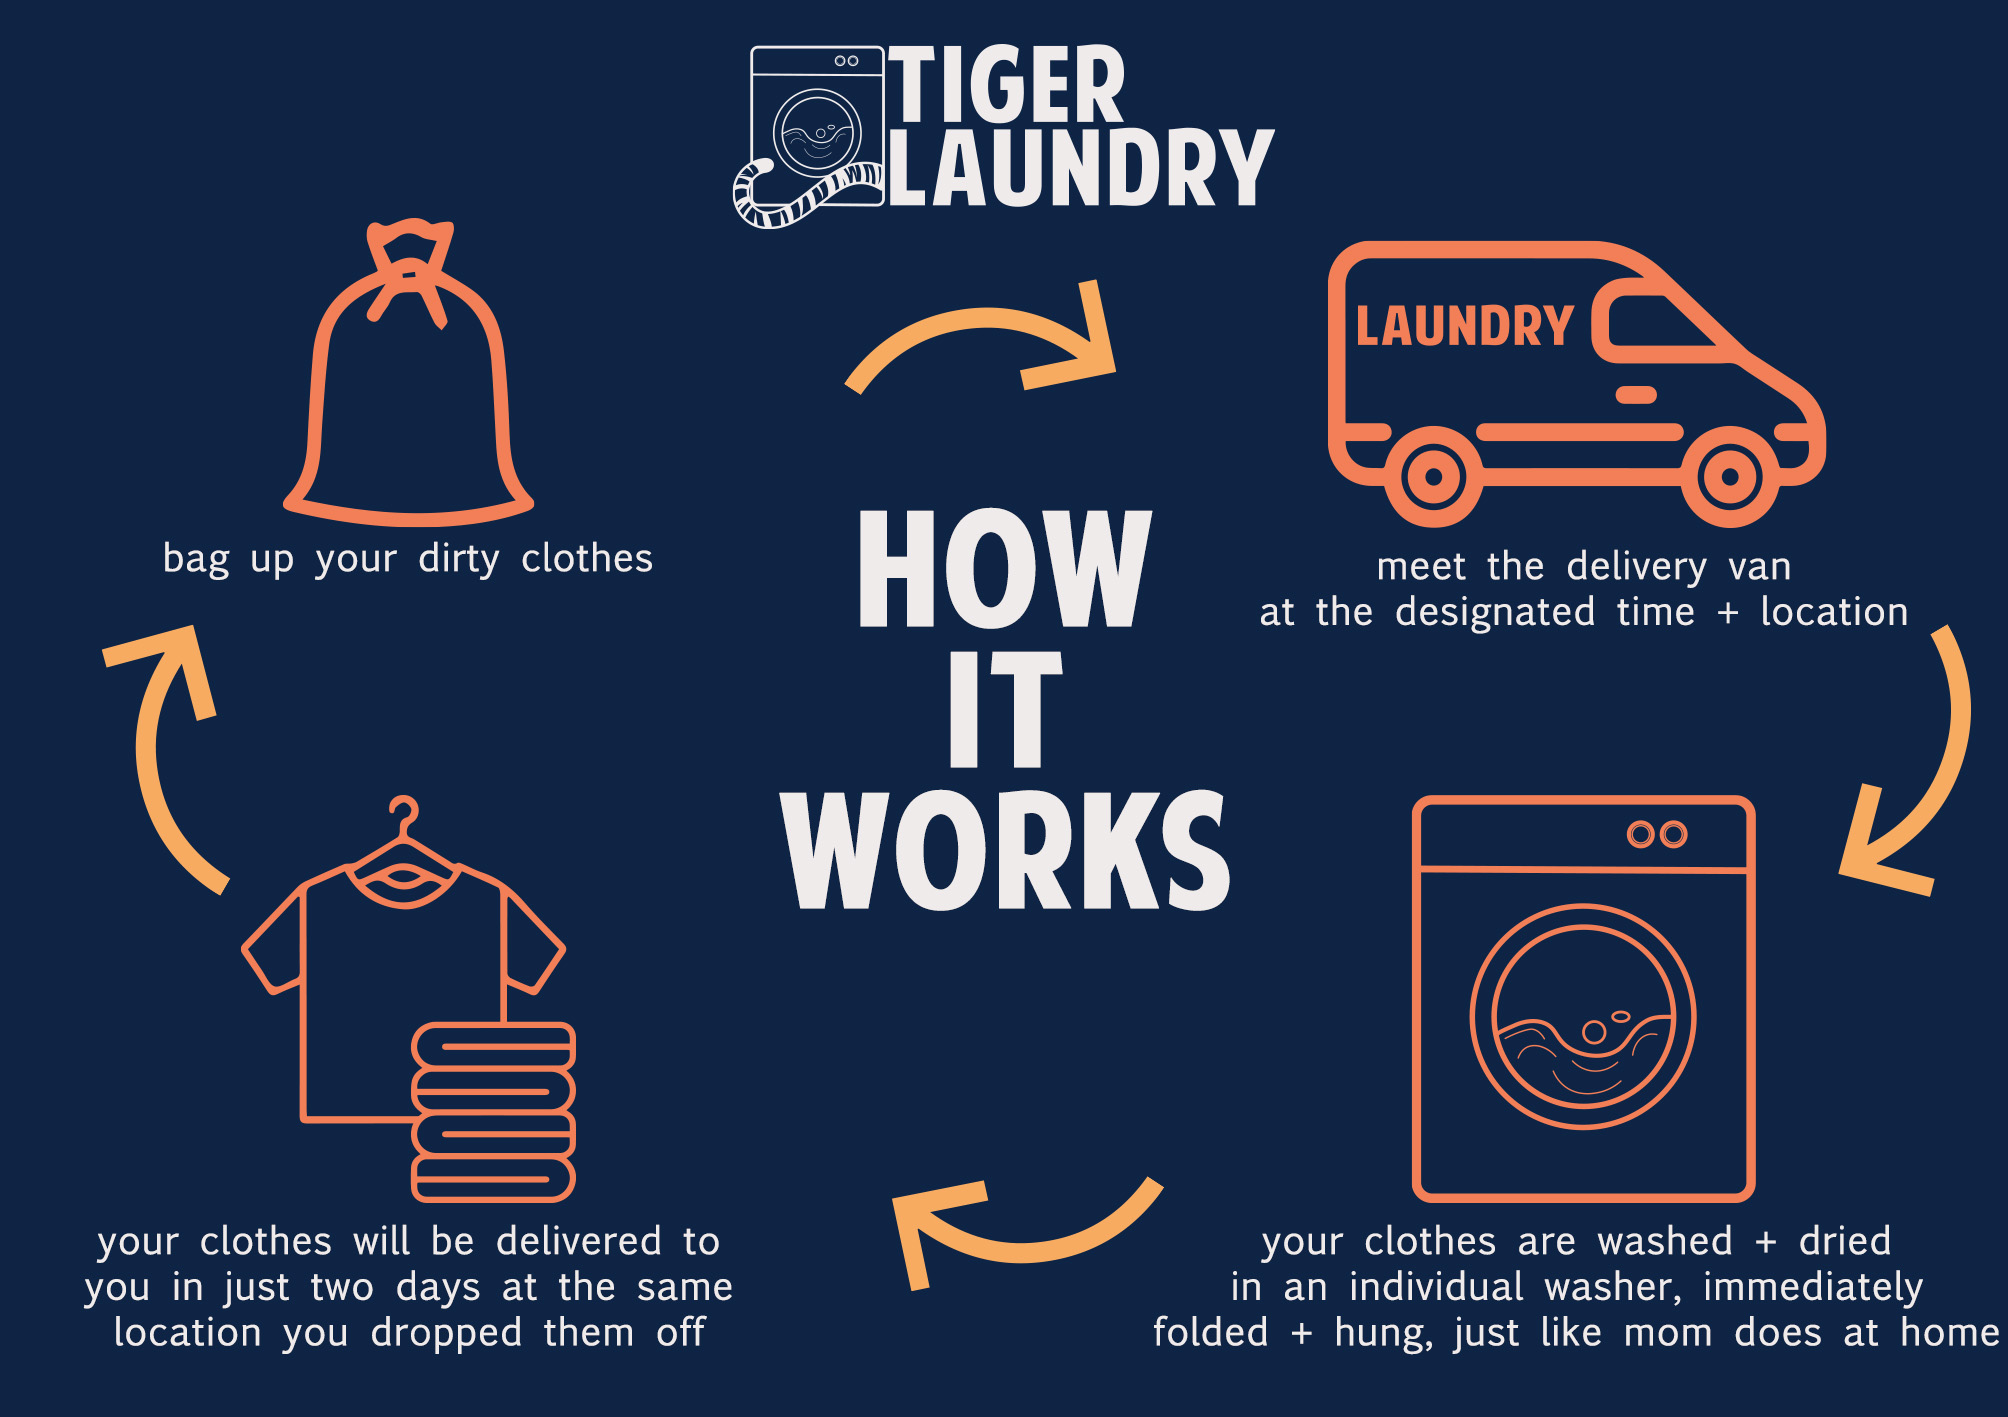 Tiger Laundry How It Works